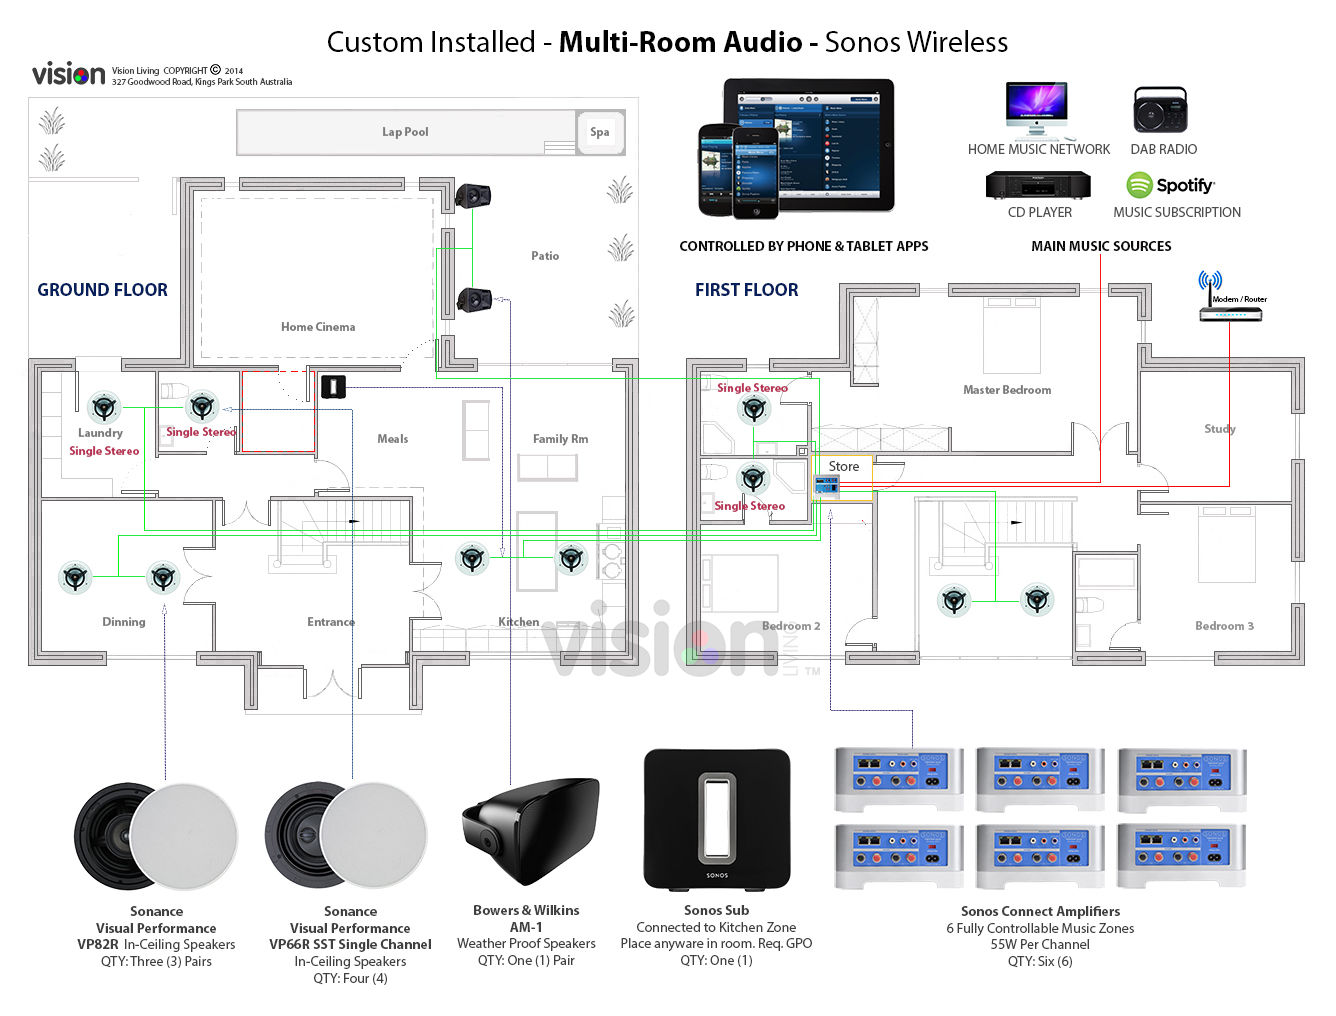 home theater speaker wiring diagrams home automotive wiring diagrams multiroom%20audio%20sonos%20plan%20